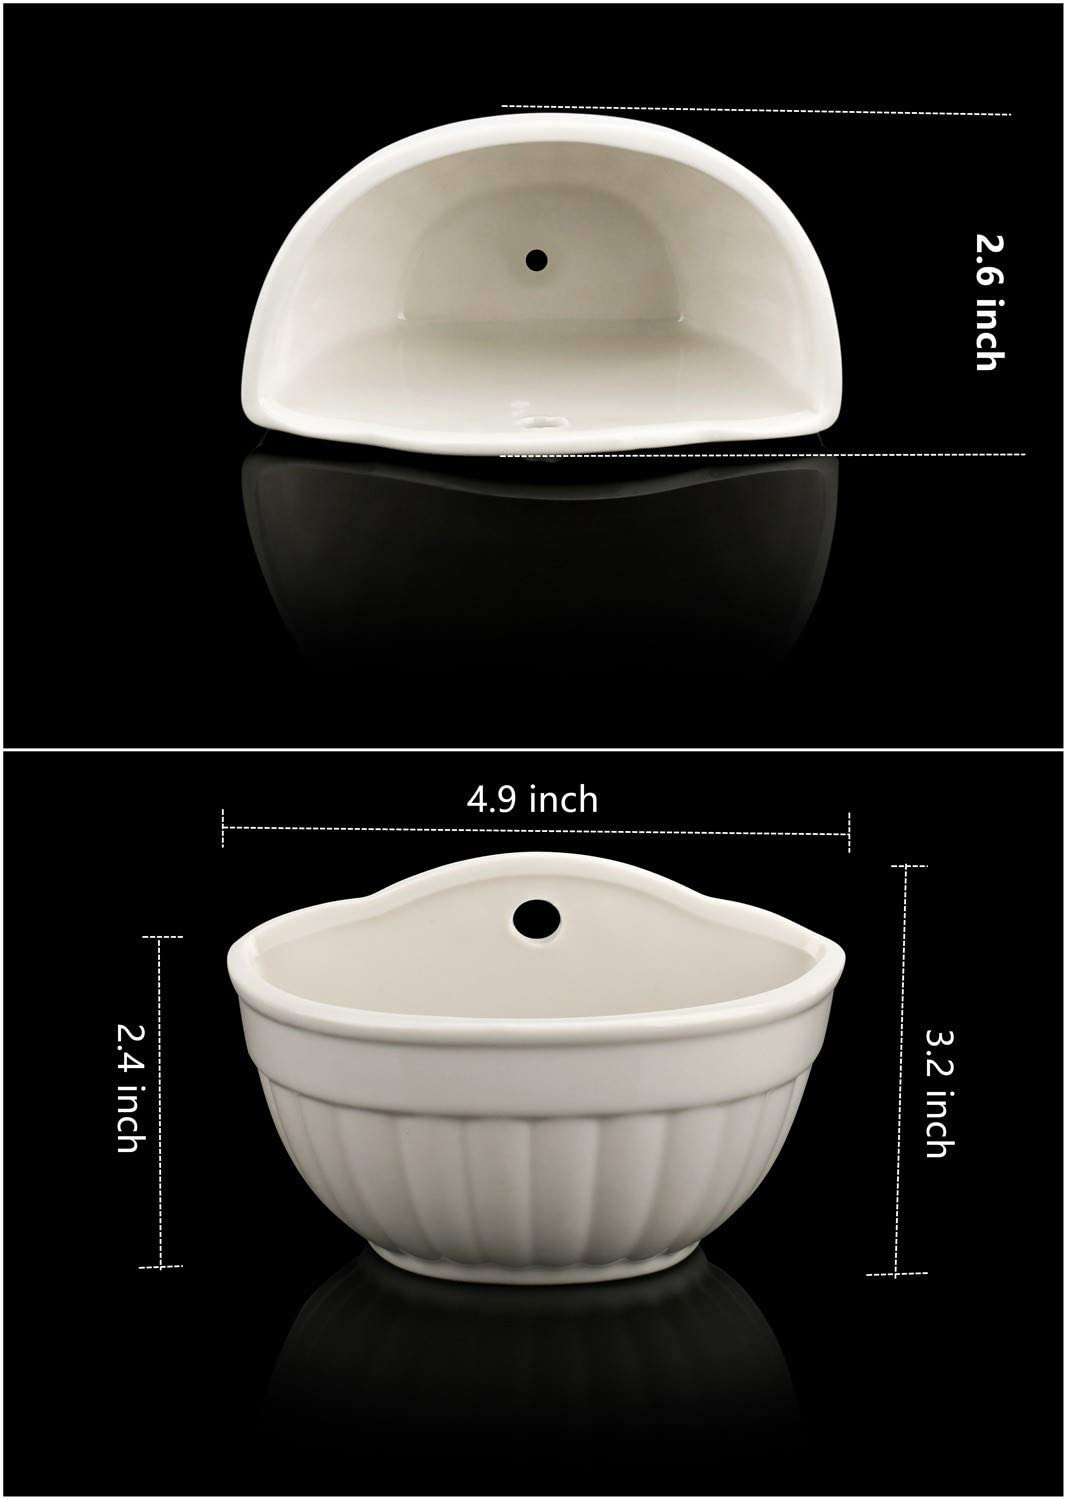 Ceramic Wall Planter,Modern Sector Hanging or Freestanding Succulent Pots YISEEK Mini White Wall Mountable Flower Plant Vase Bottom Drain Hole, Matching Hole Plug